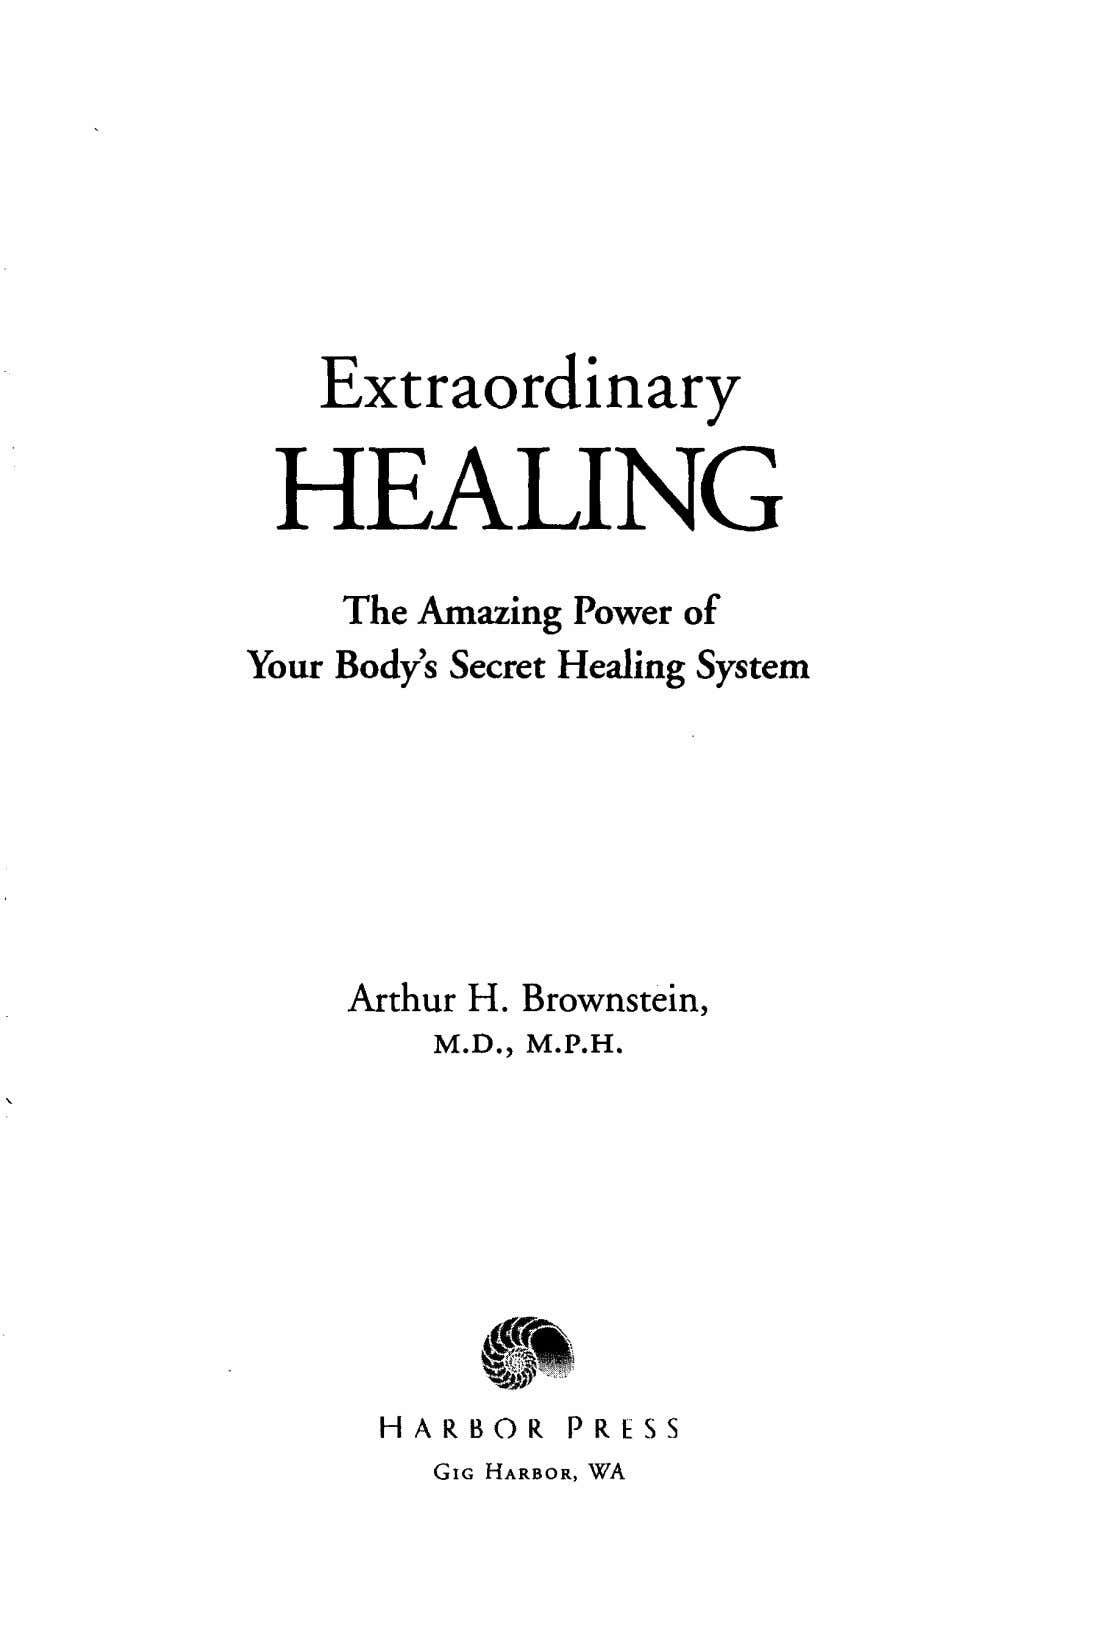 Extraordinary HEALING The Amazing Power of Your Body's Secret Healing System Arthur H. Brownstein, M.D.,